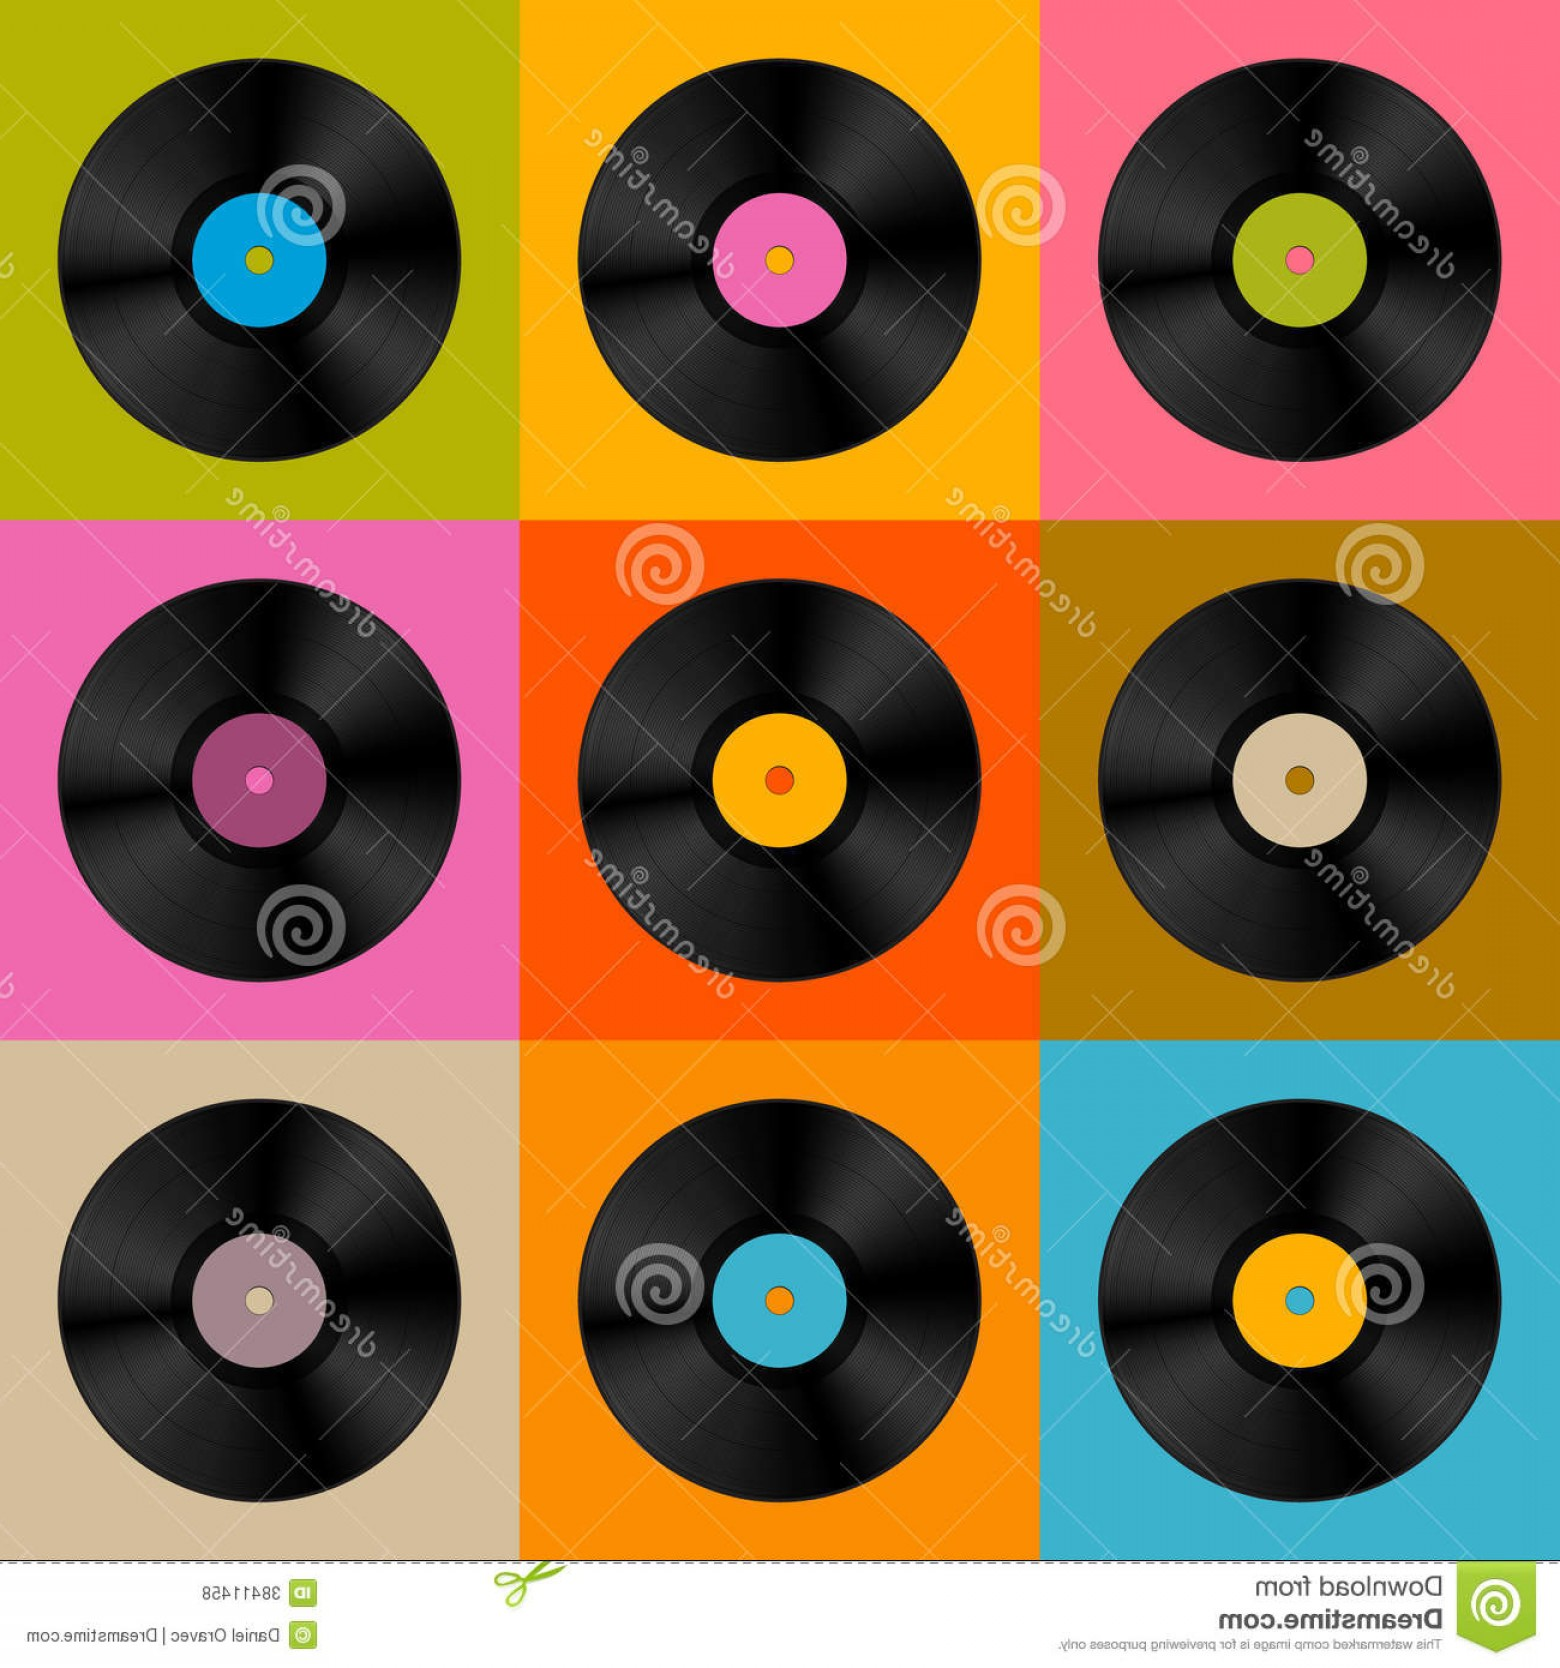 Vinyl Vector Tools: Royalty Free Stock Photos Retro Vintage Vector Vinyl Record Disc Colorful Background Image